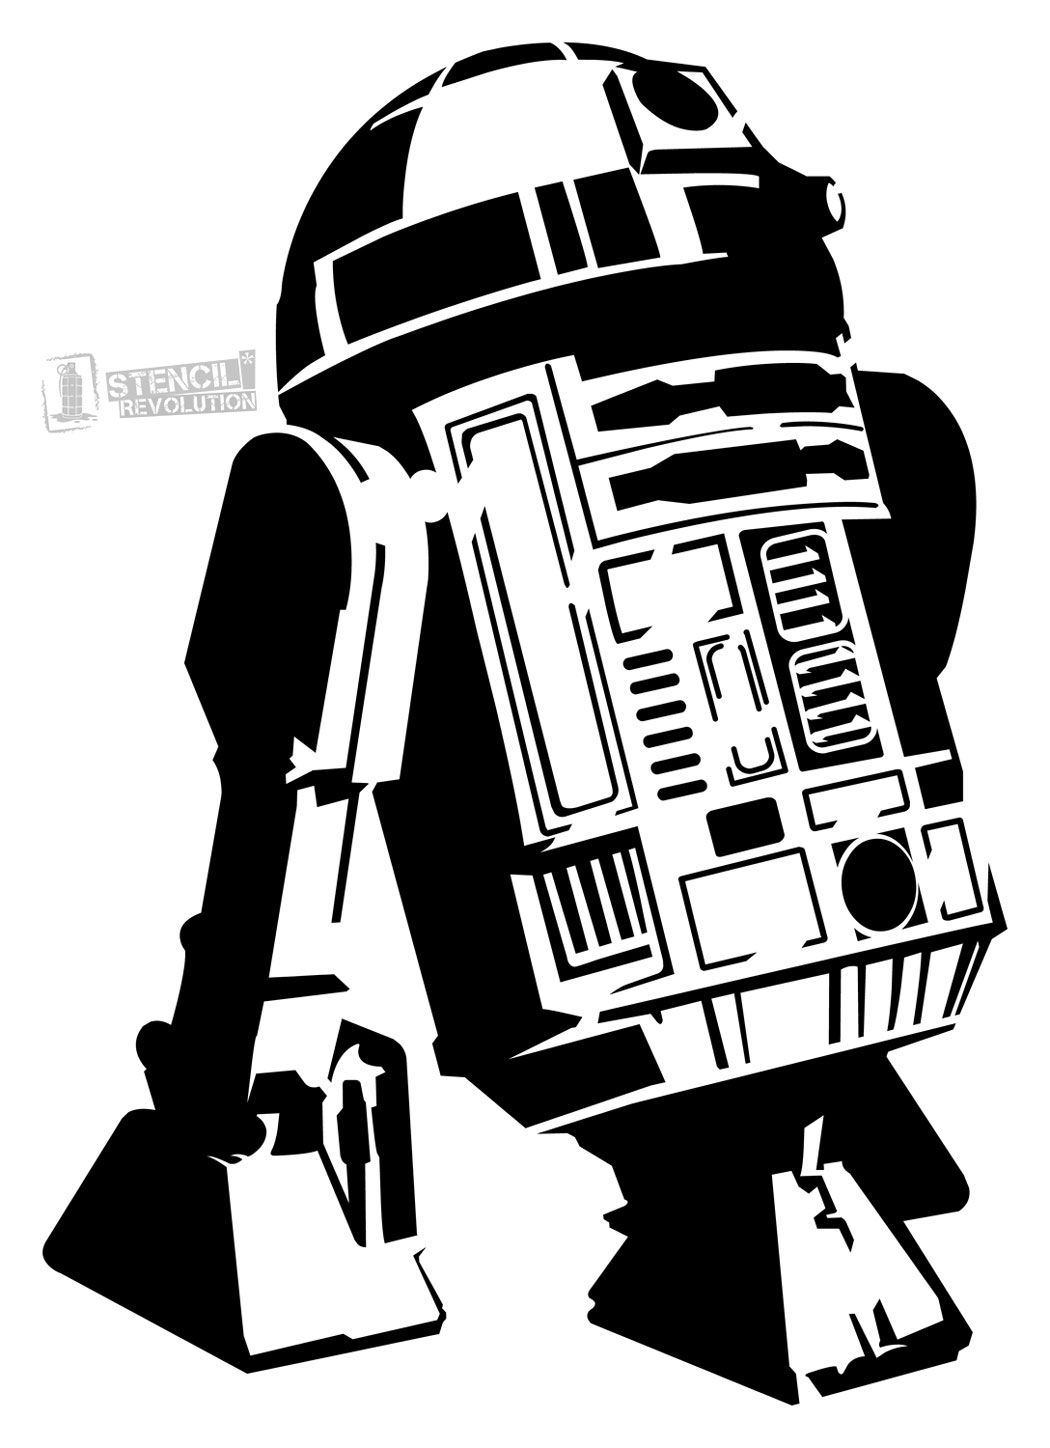 r2d2 printable download your free r2d2 stencil here save time and start printable r2d2